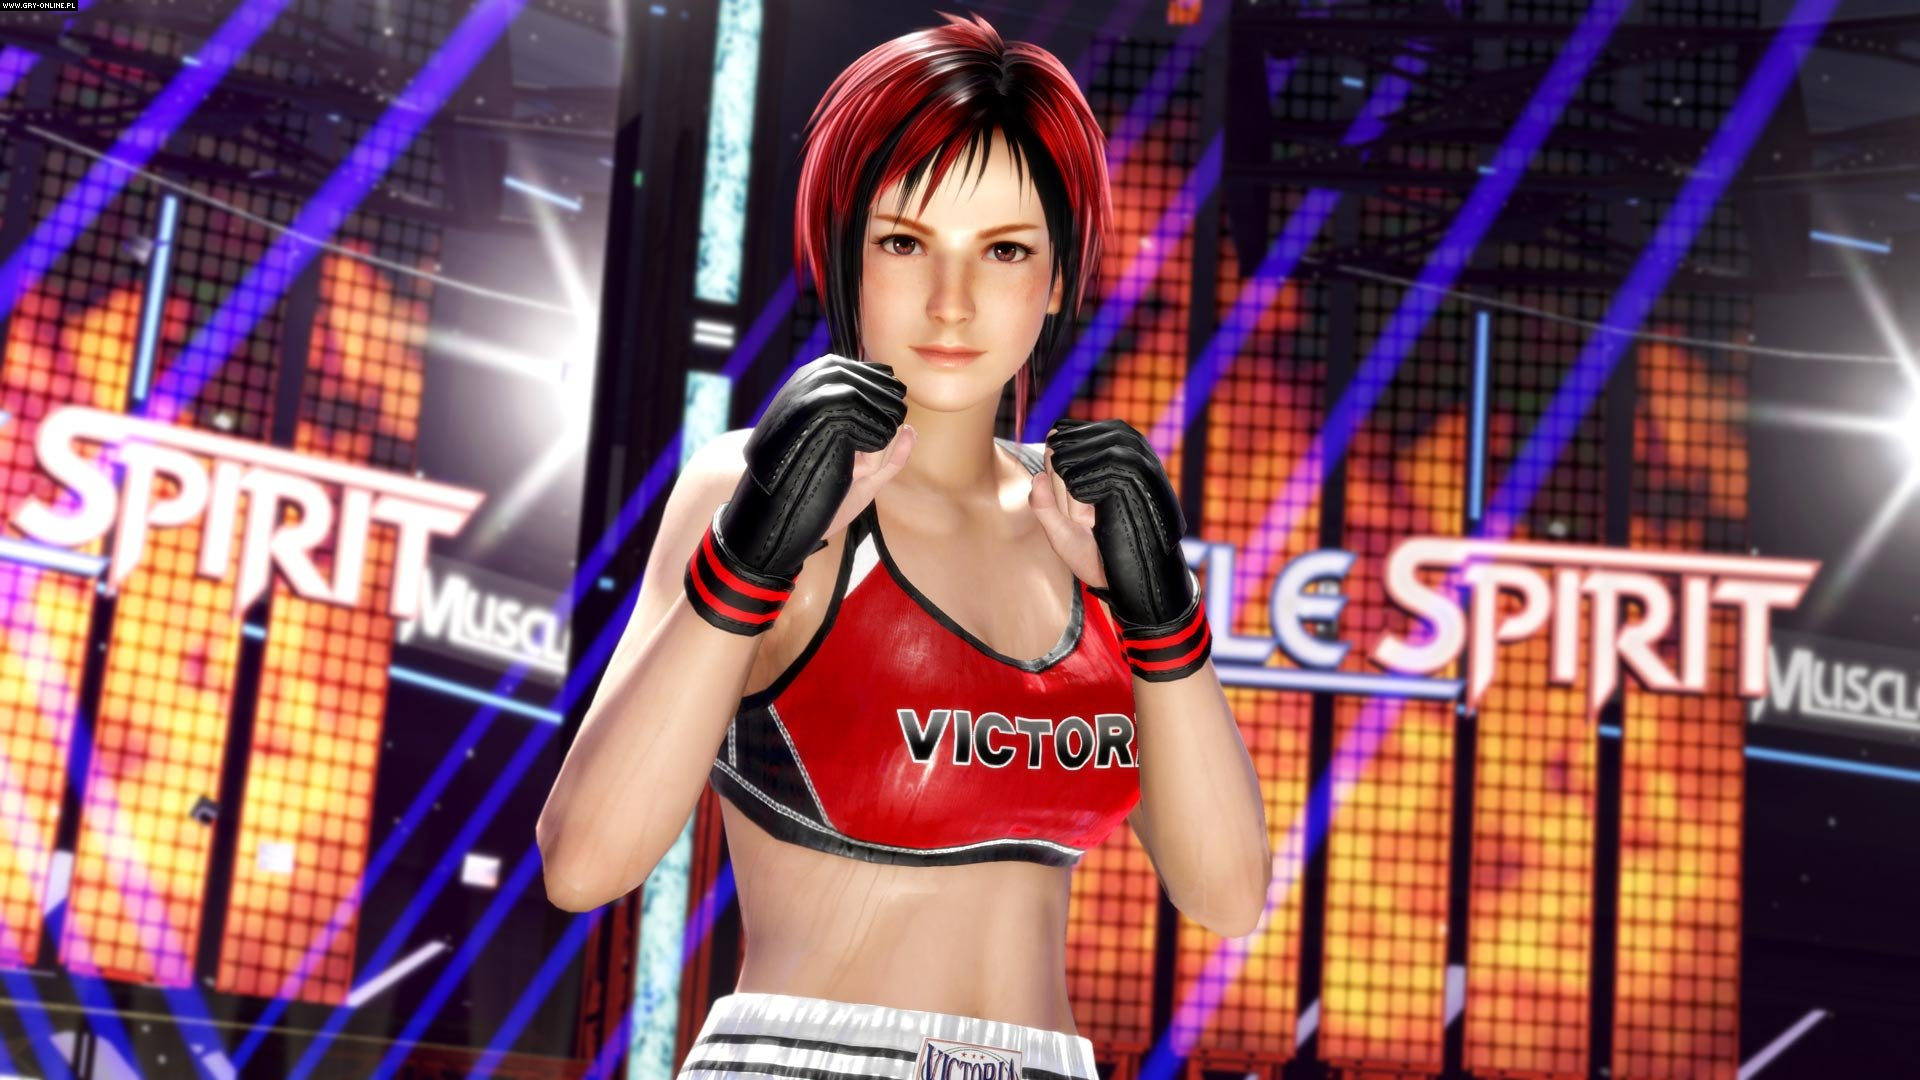 Dead or Alive 6 PC, PS4, XONE Games Image 8/59, Team Ninja, Koei Tecmo